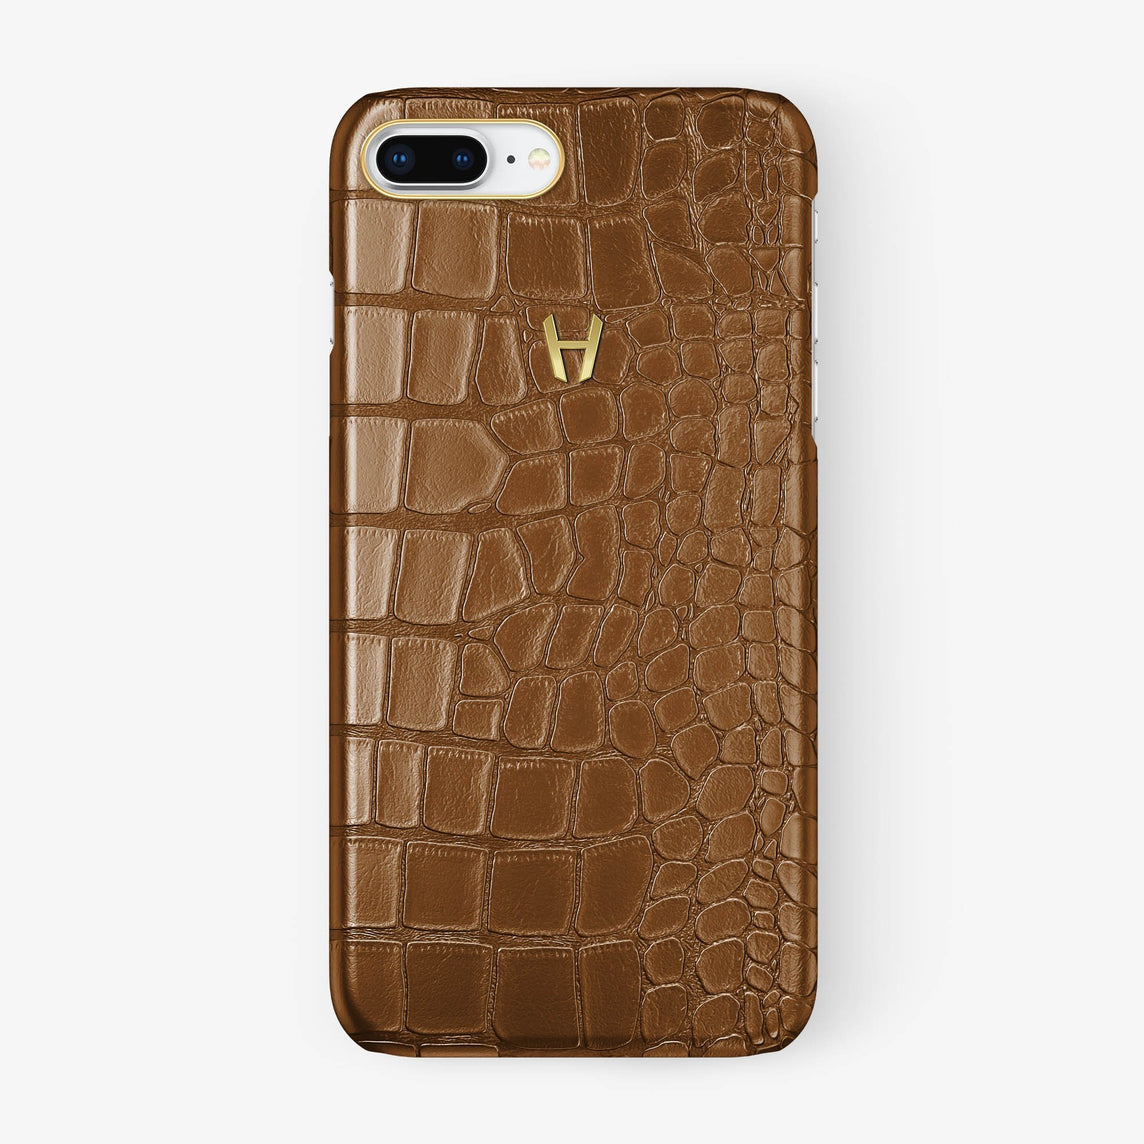 Alligator Case iPhone 7/8 Plus | Cognac - Yellow Gold - Hadoro